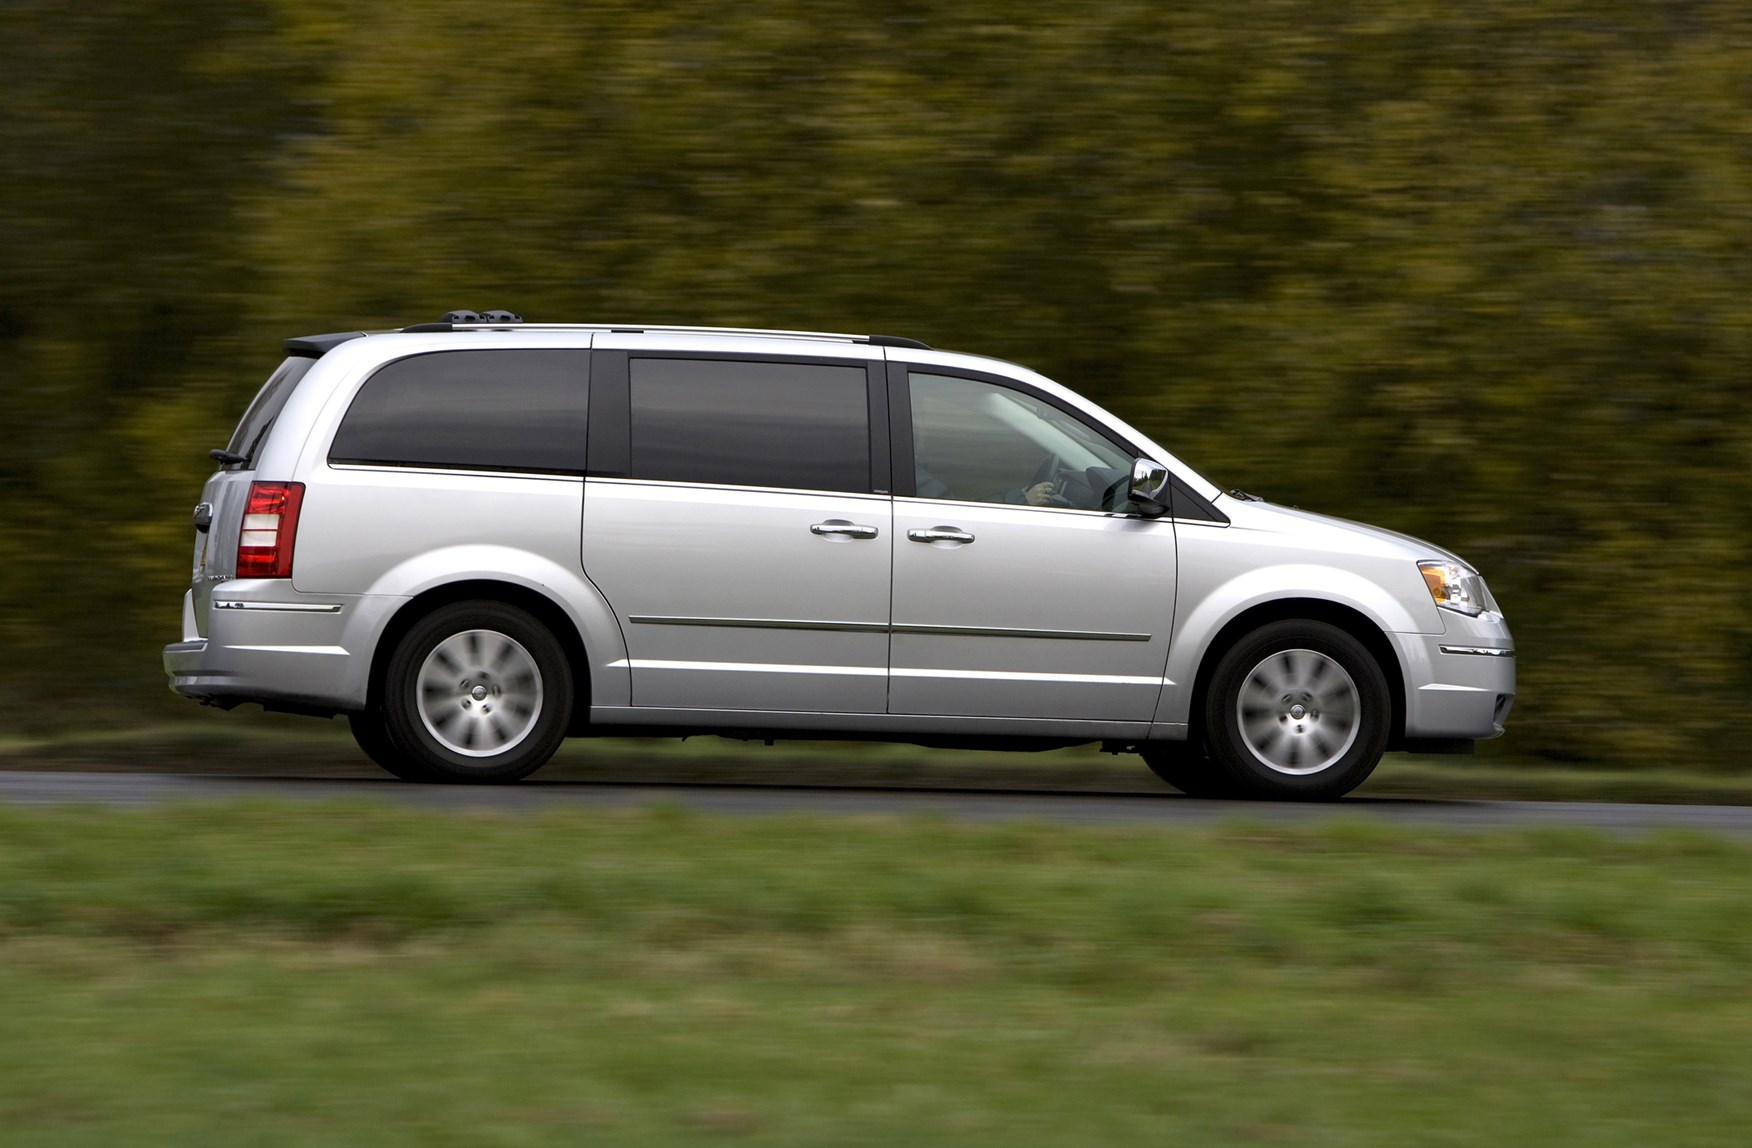 chrysler grand voyager station wagon 2008 2015 photos. Black Bedroom Furniture Sets. Home Design Ideas